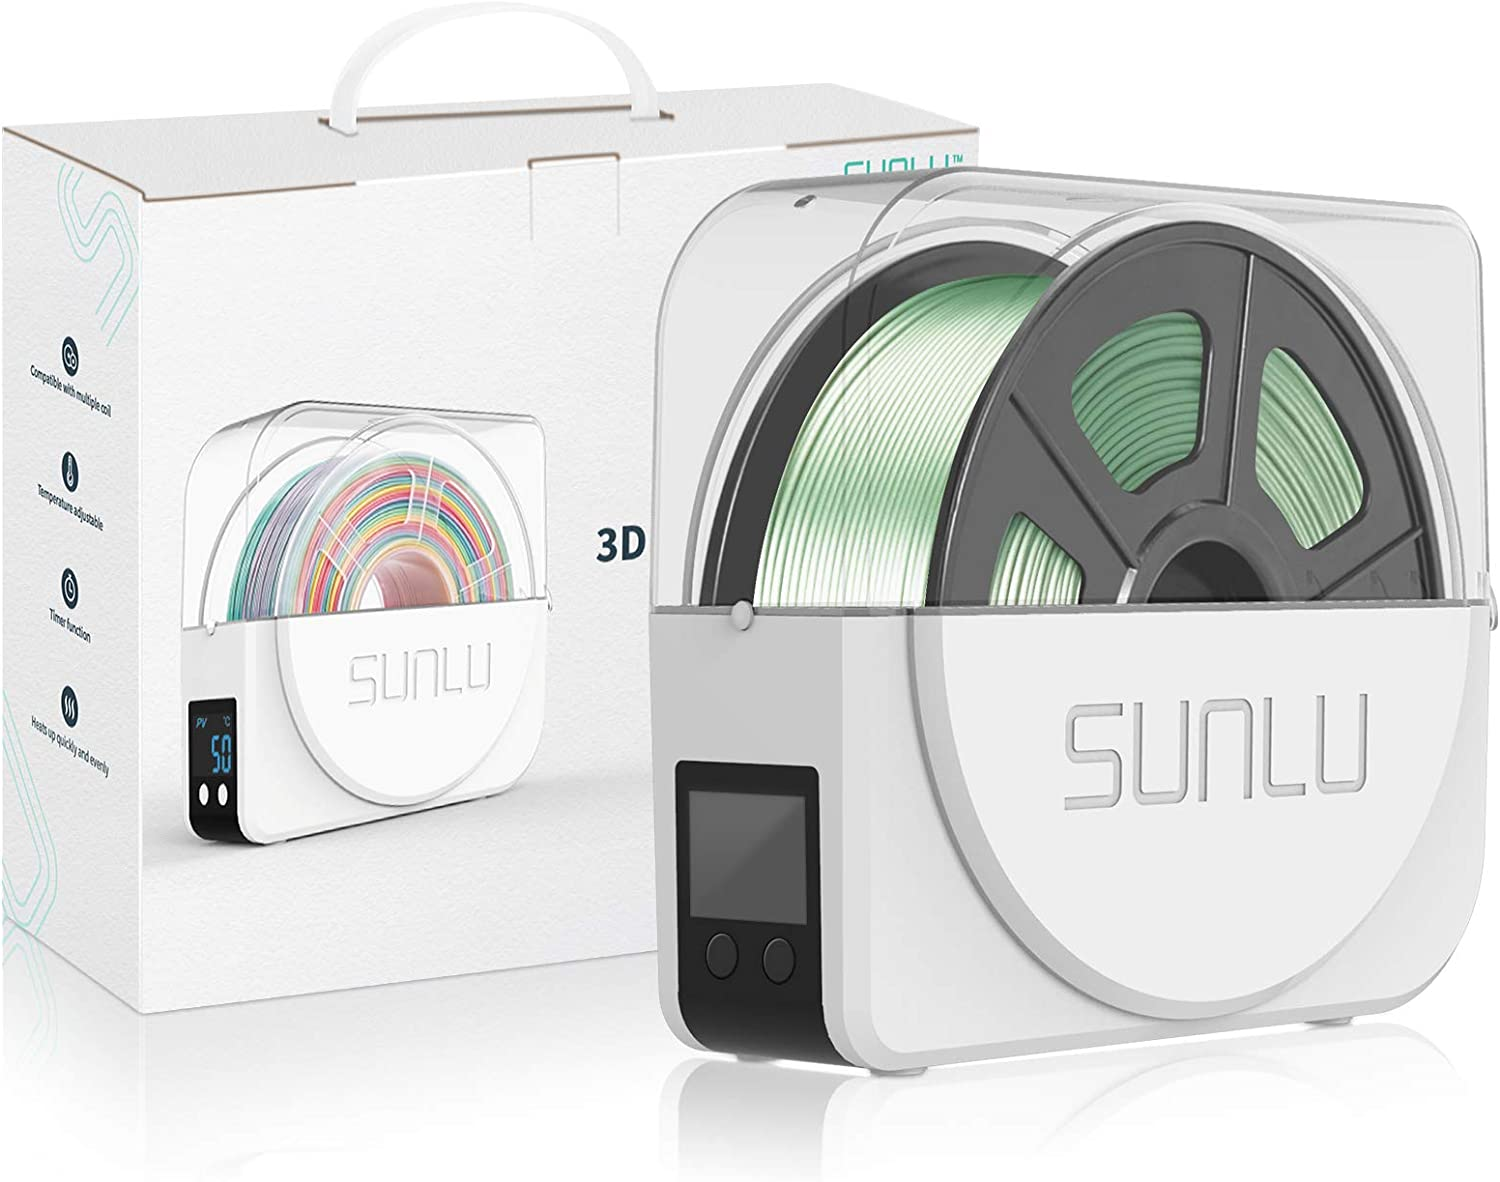 3D Printer Filament Dryer Box from SUNLU, Keep Filament Dry During 3D Printing,Compatible with 1.75mm, 2.85mm, 3.00mm Filament,Filament Holder